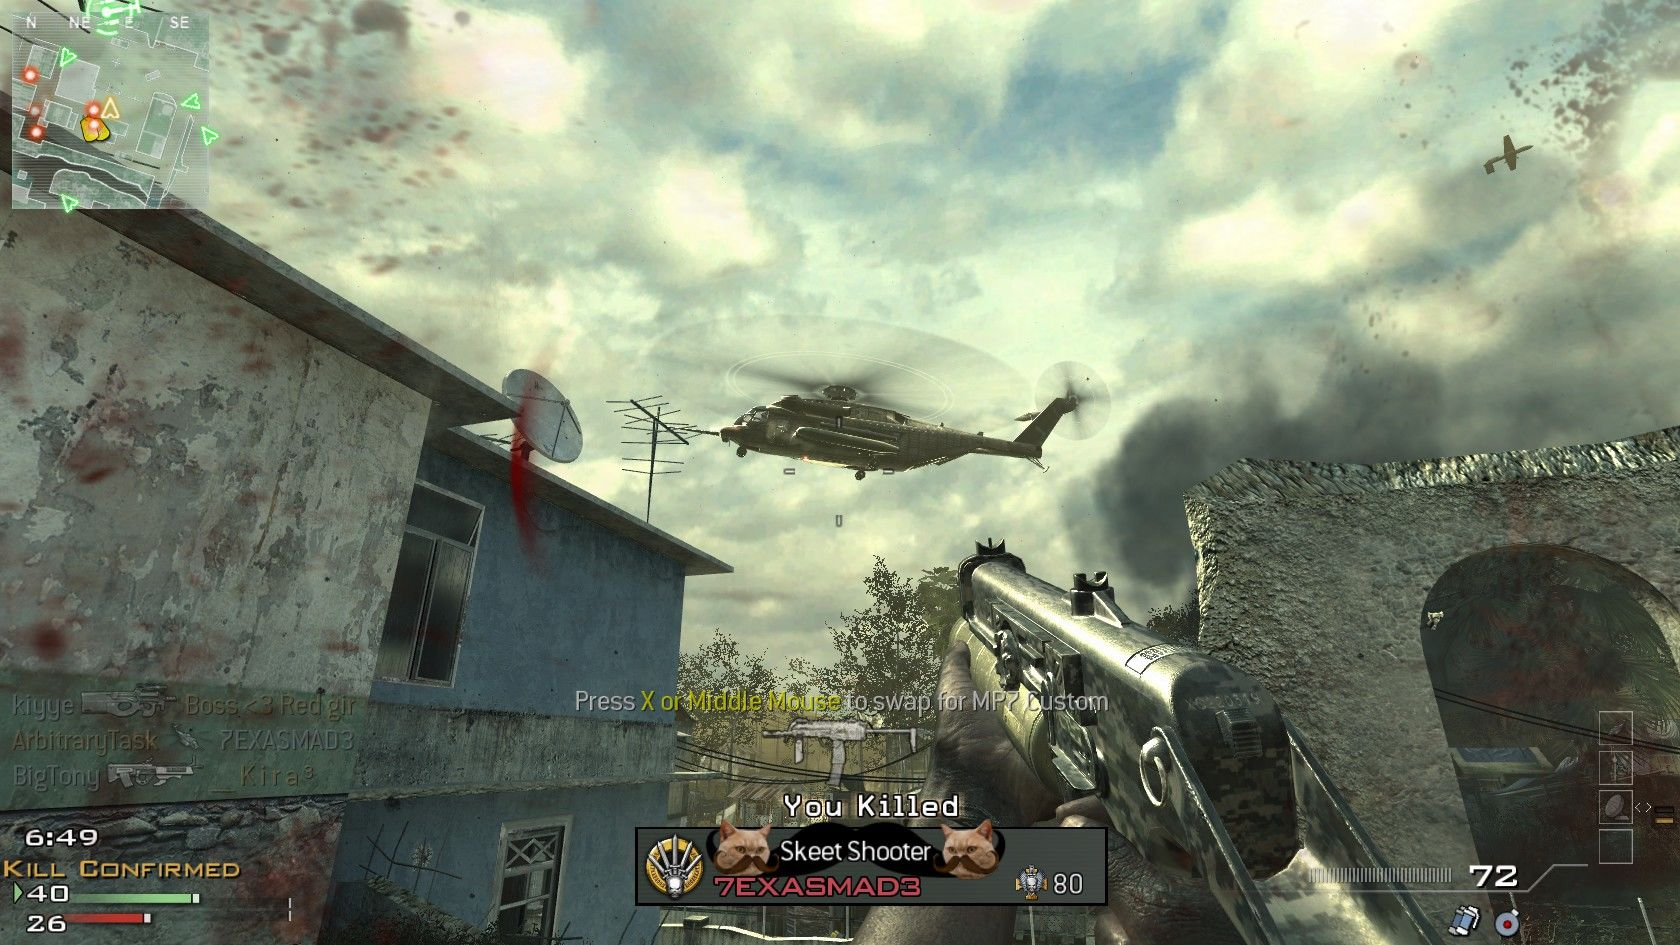 http://www.mobygames.com/images/shots/l/547594-call-of-duty-modern-warfare-3-windows-screenshot-my-pave-low.jpg